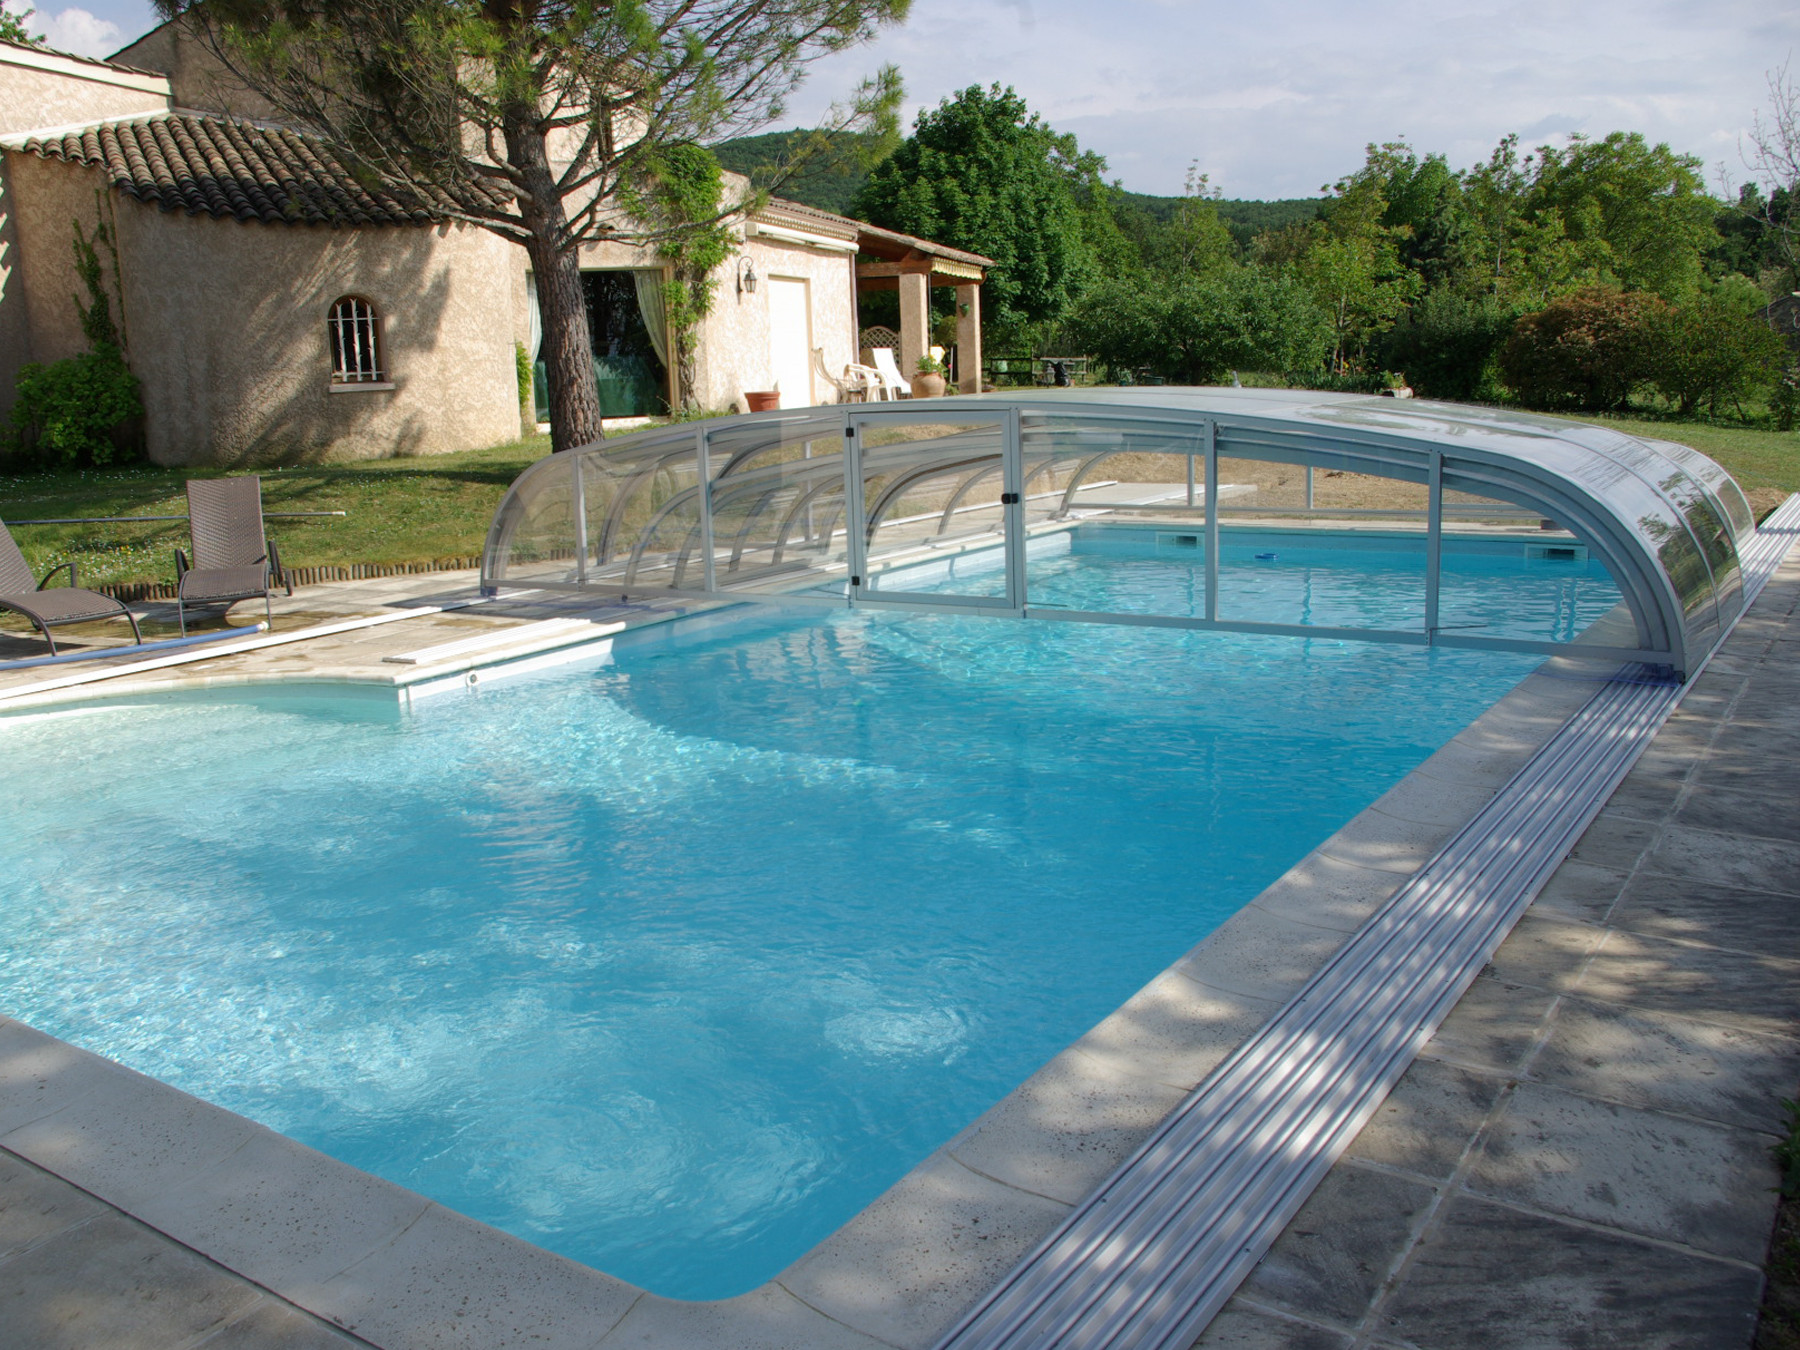 Abri de piscine t lescopique cintral for Abri de piscine